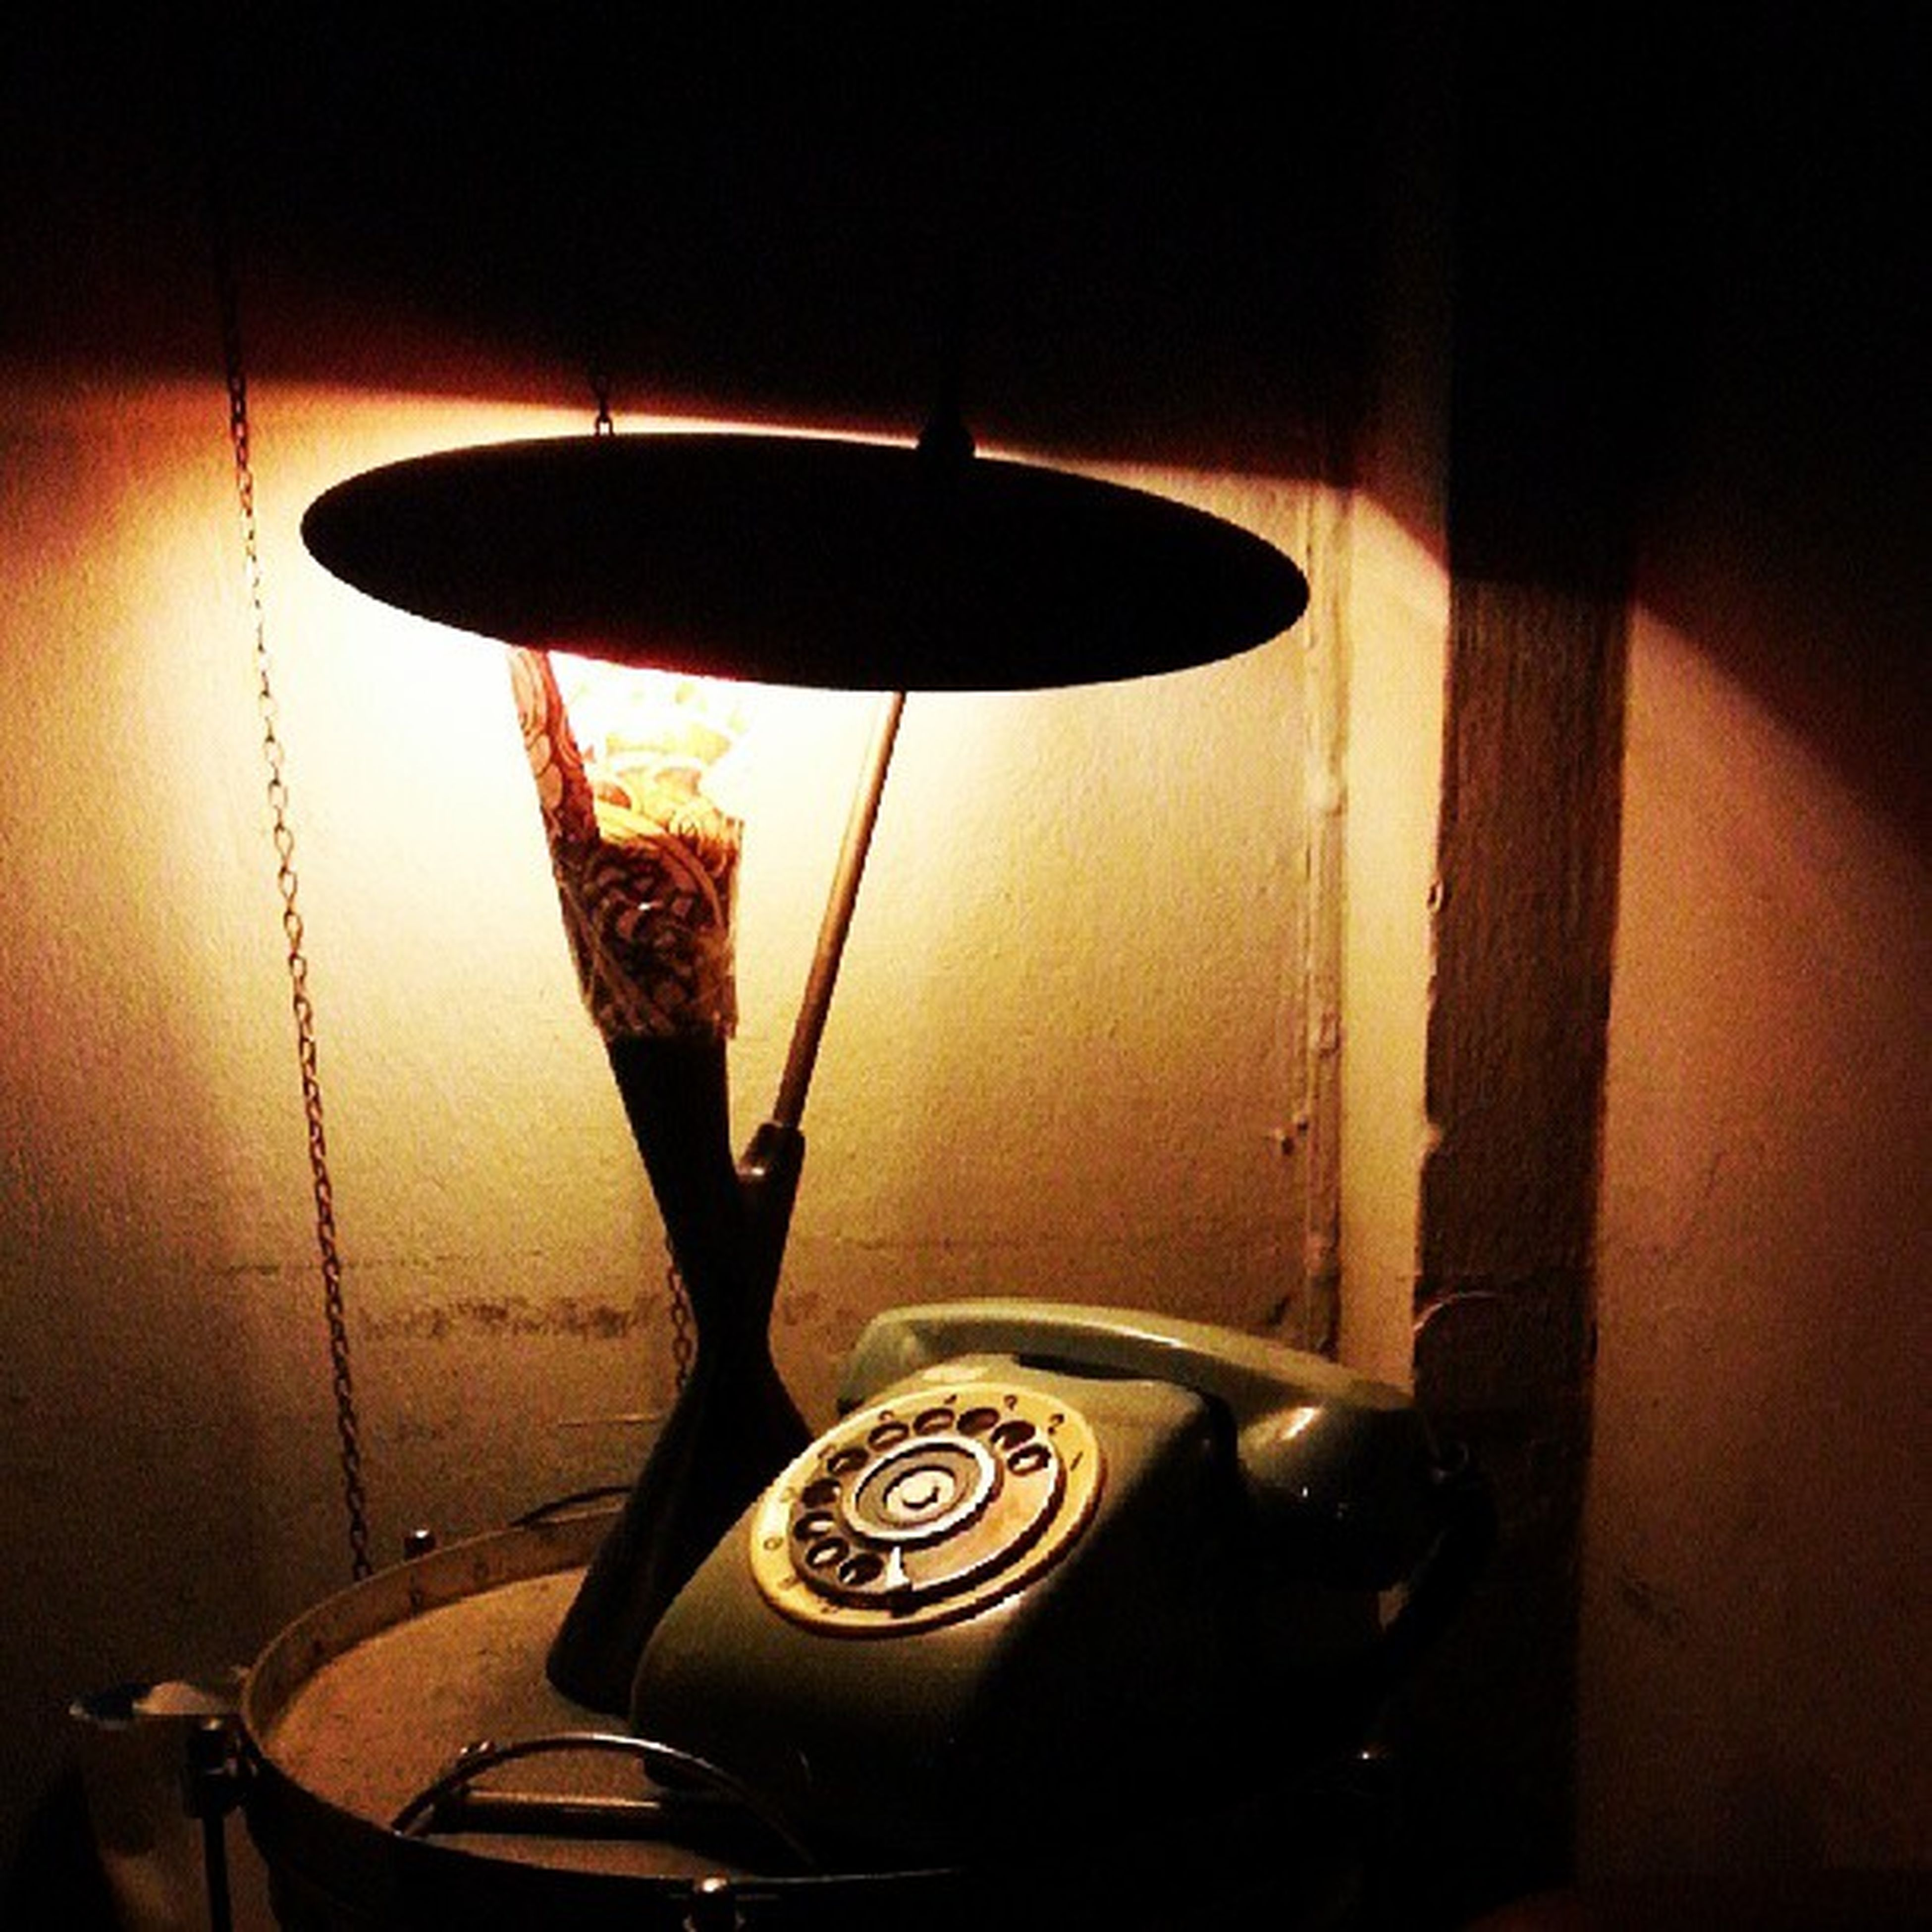 indoors, old-fashioned, wall - building feature, illuminated, electricity, lighting equipment, close-up, metal, retro styled, no people, technology, hanging, old, still life, absence, home interior, wall, electric lamp, antique, door